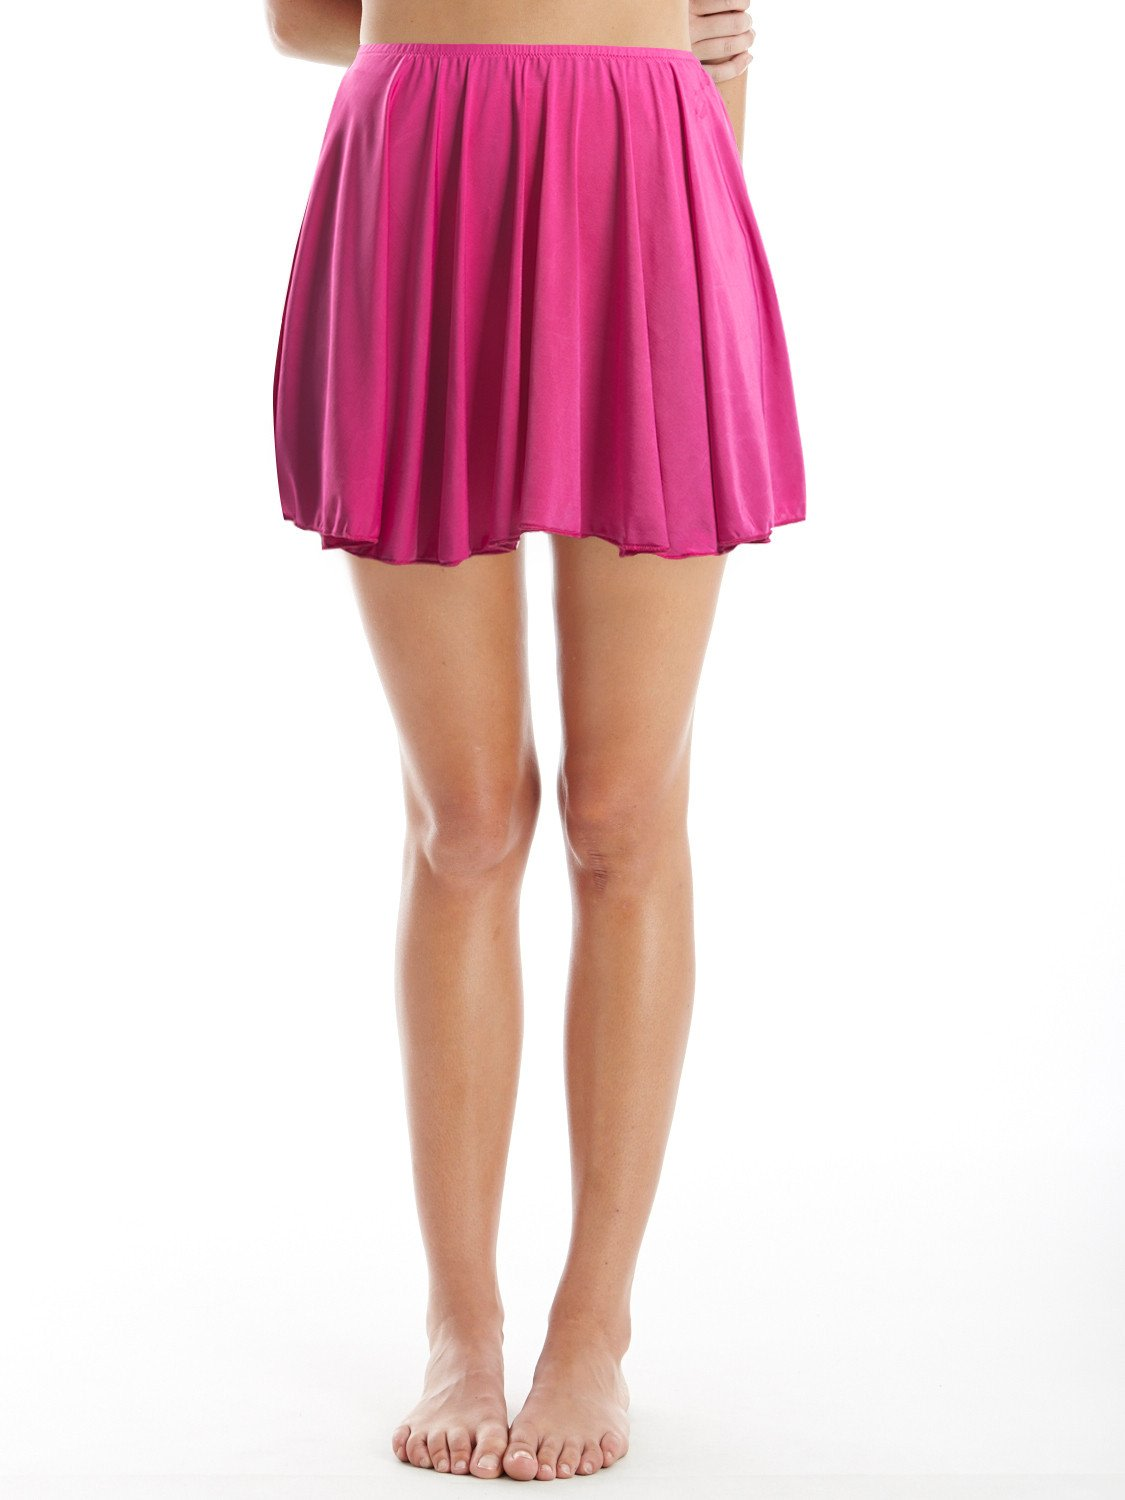 skirt in sugar plum